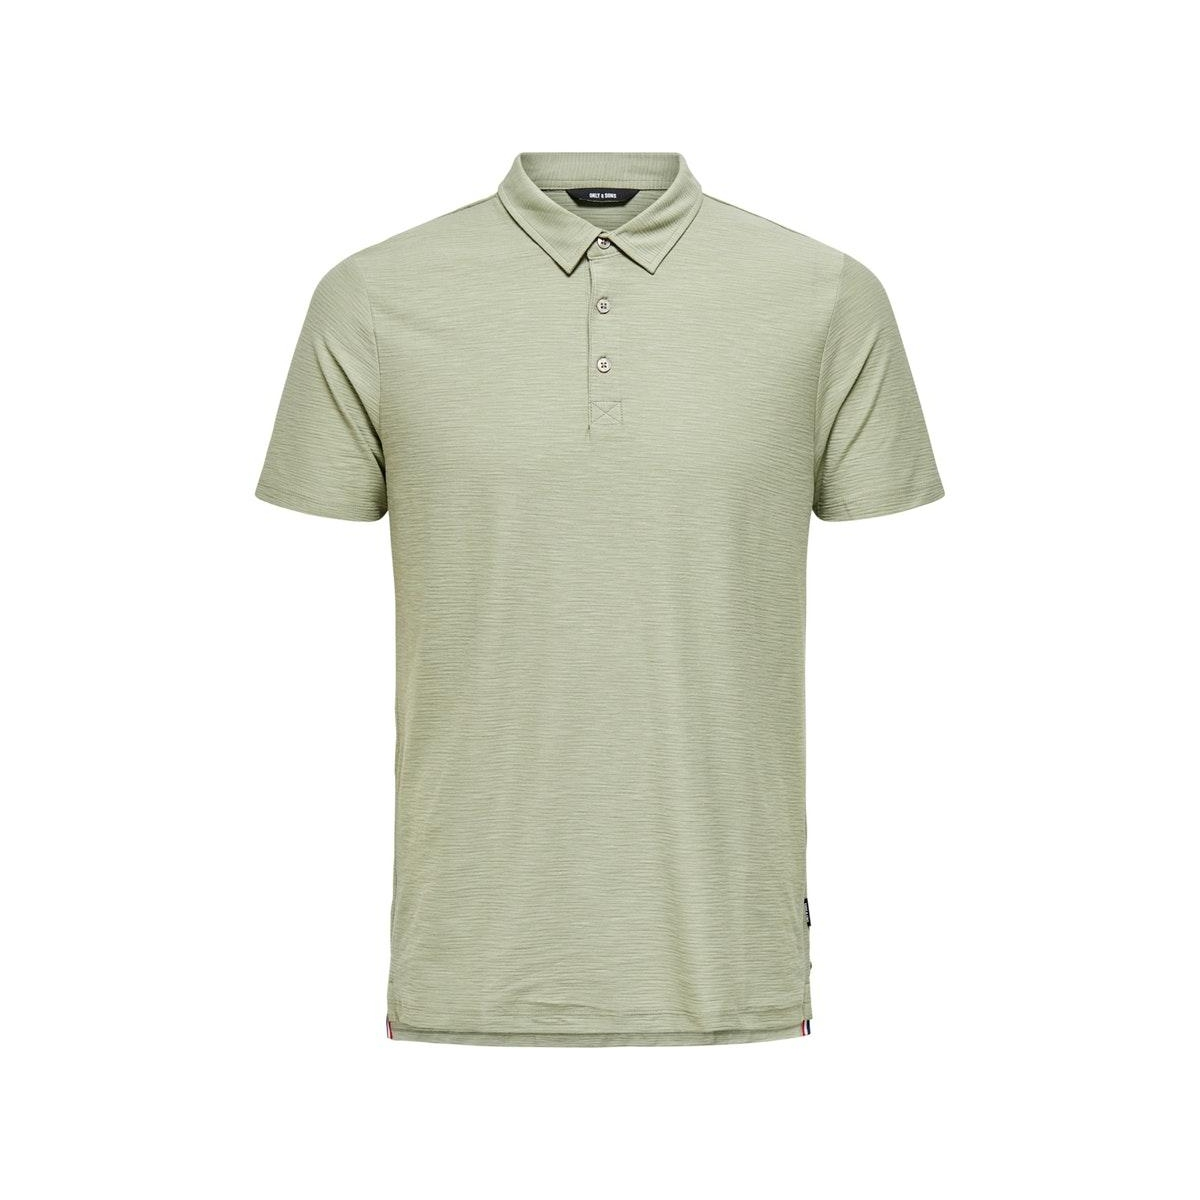 onsilkas slim ss polo noos 22016346 only & sons polo seagrass